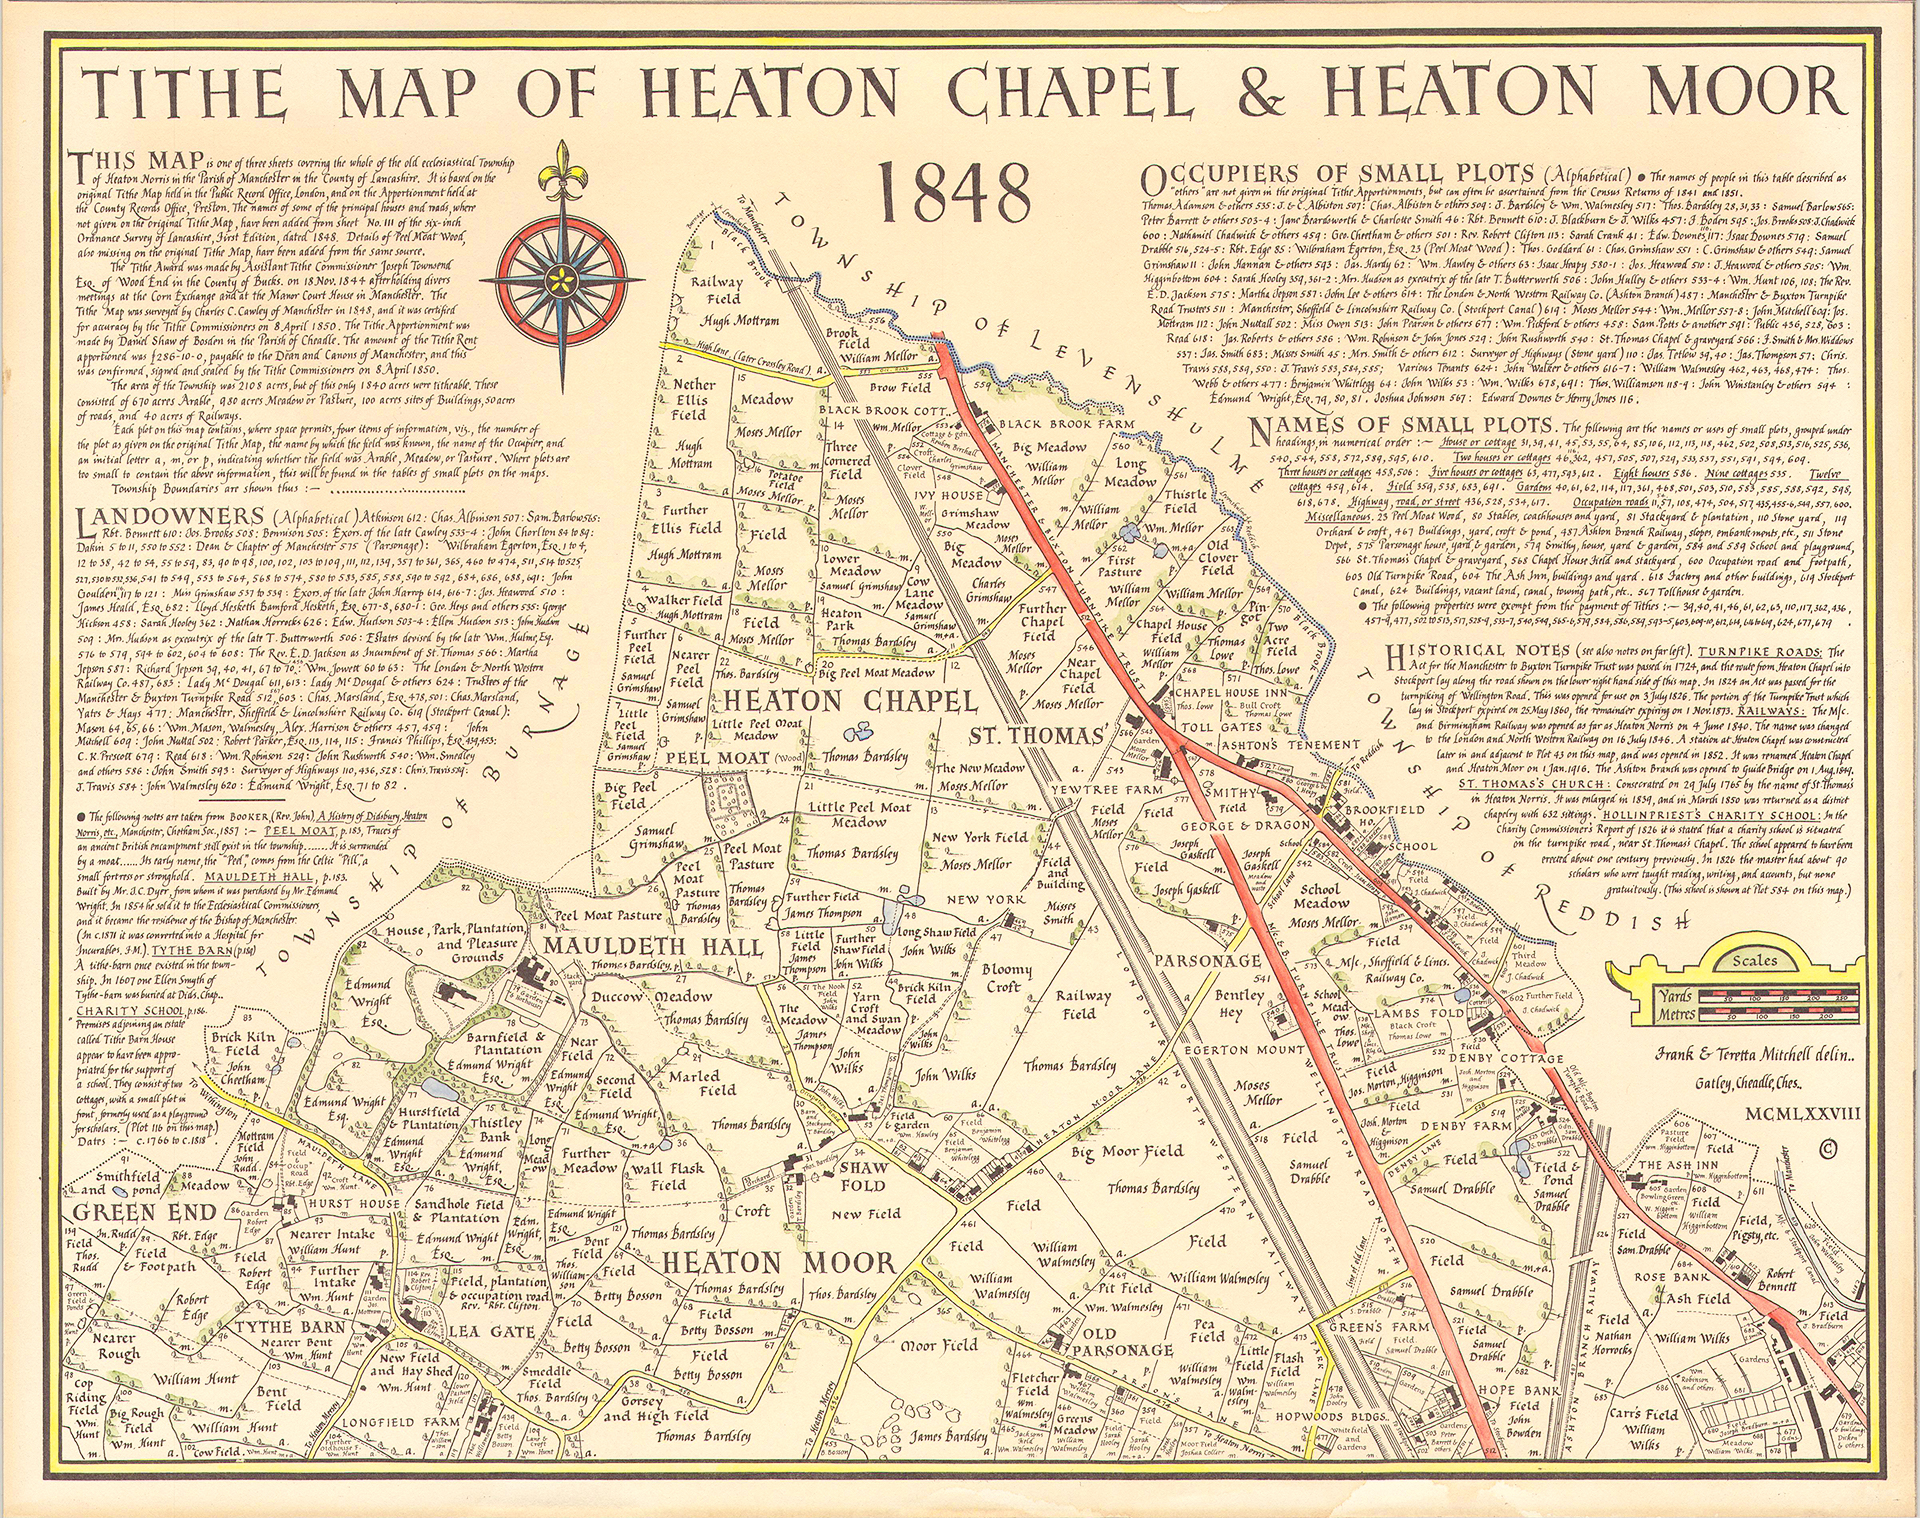 Tithe map of heaton Chapel and Heaton moor